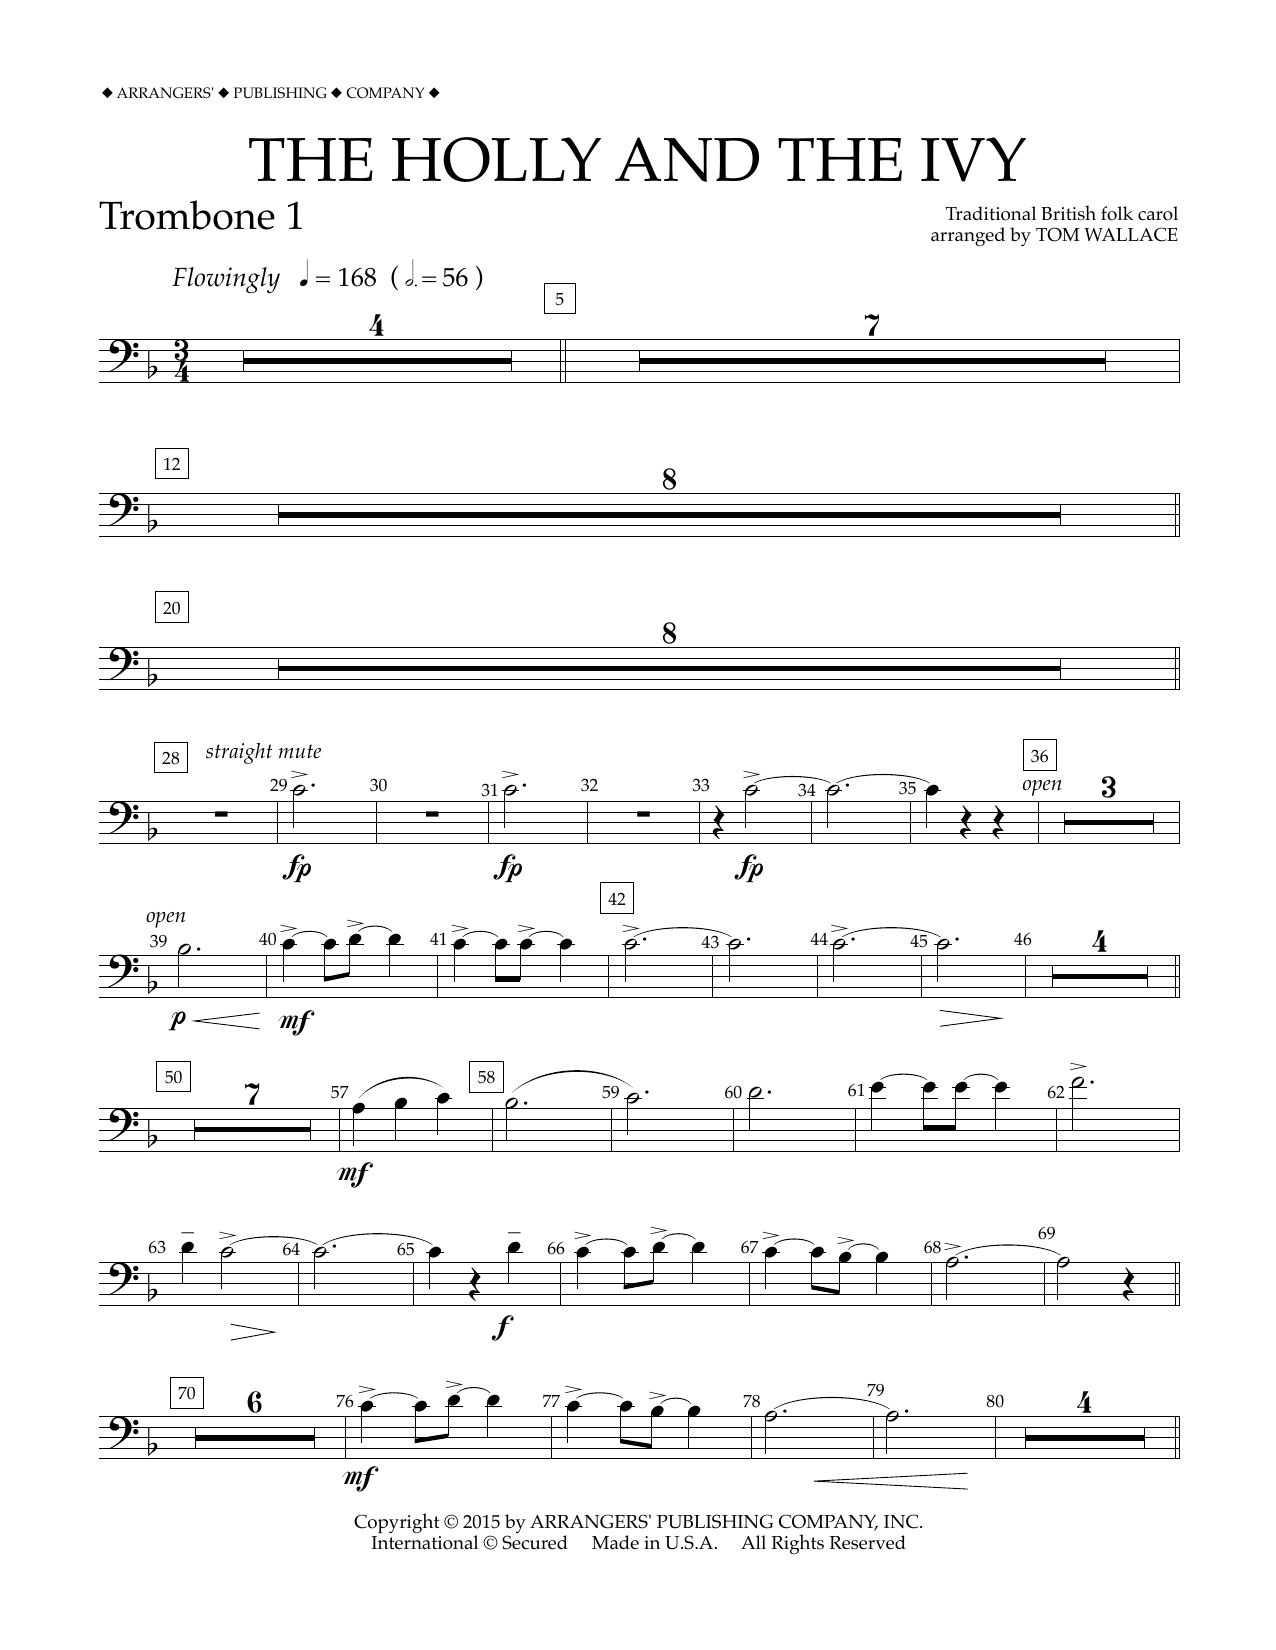 Tom Wallace The Holly and the Ivy - Trombone 1 sheet music notes and chords